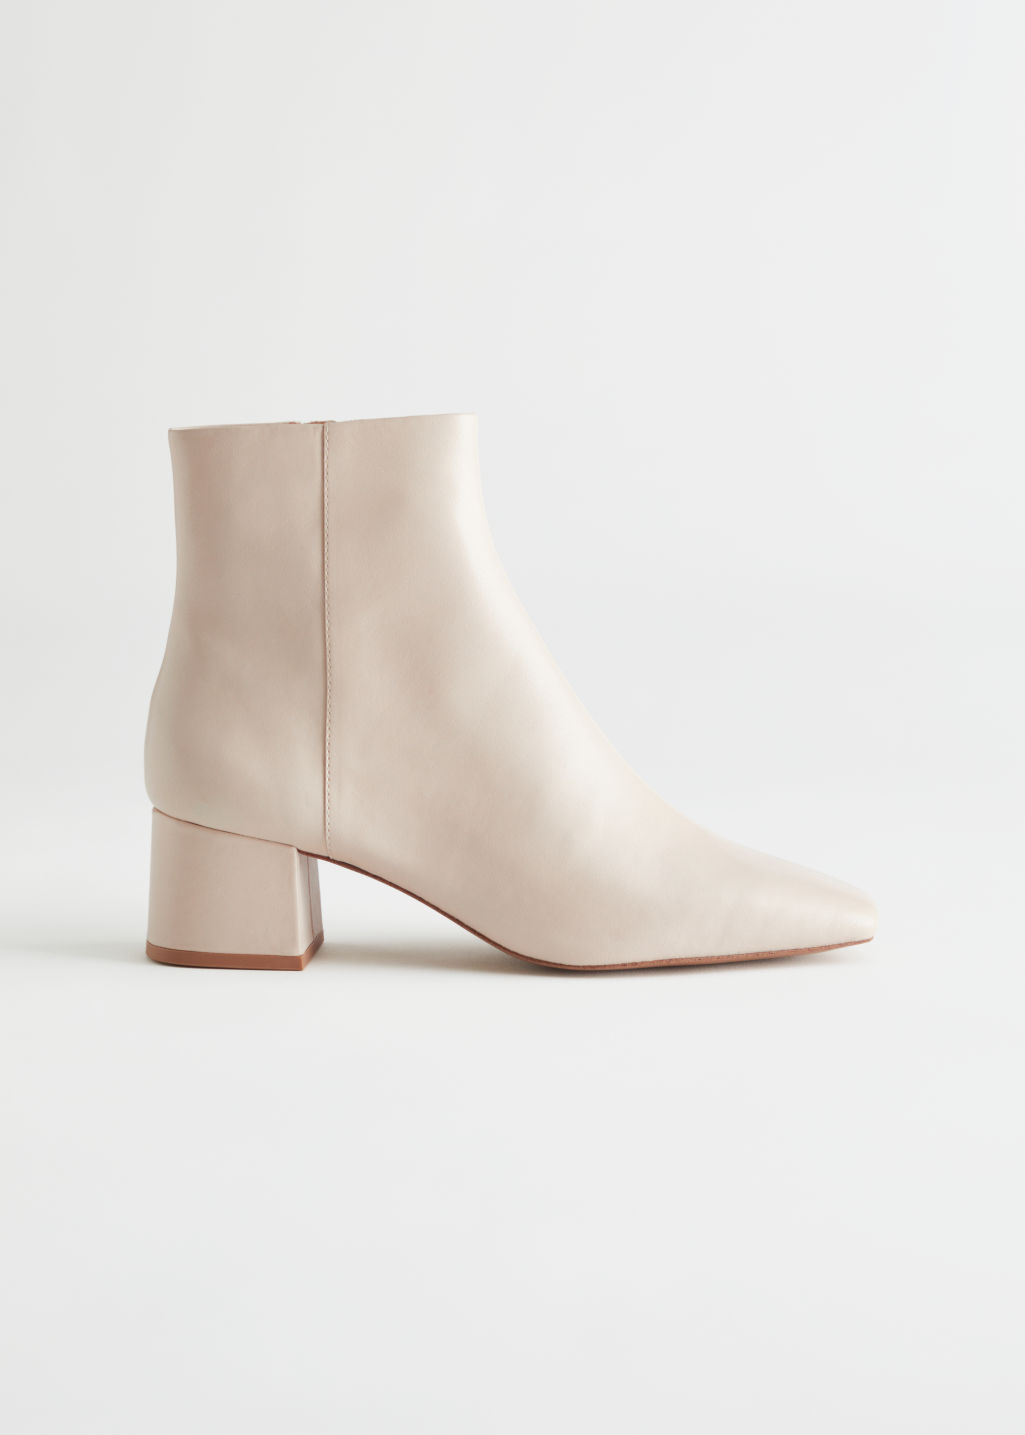 StillLife Left Image of Stories Leather Heeled Ankle Boots in Beige